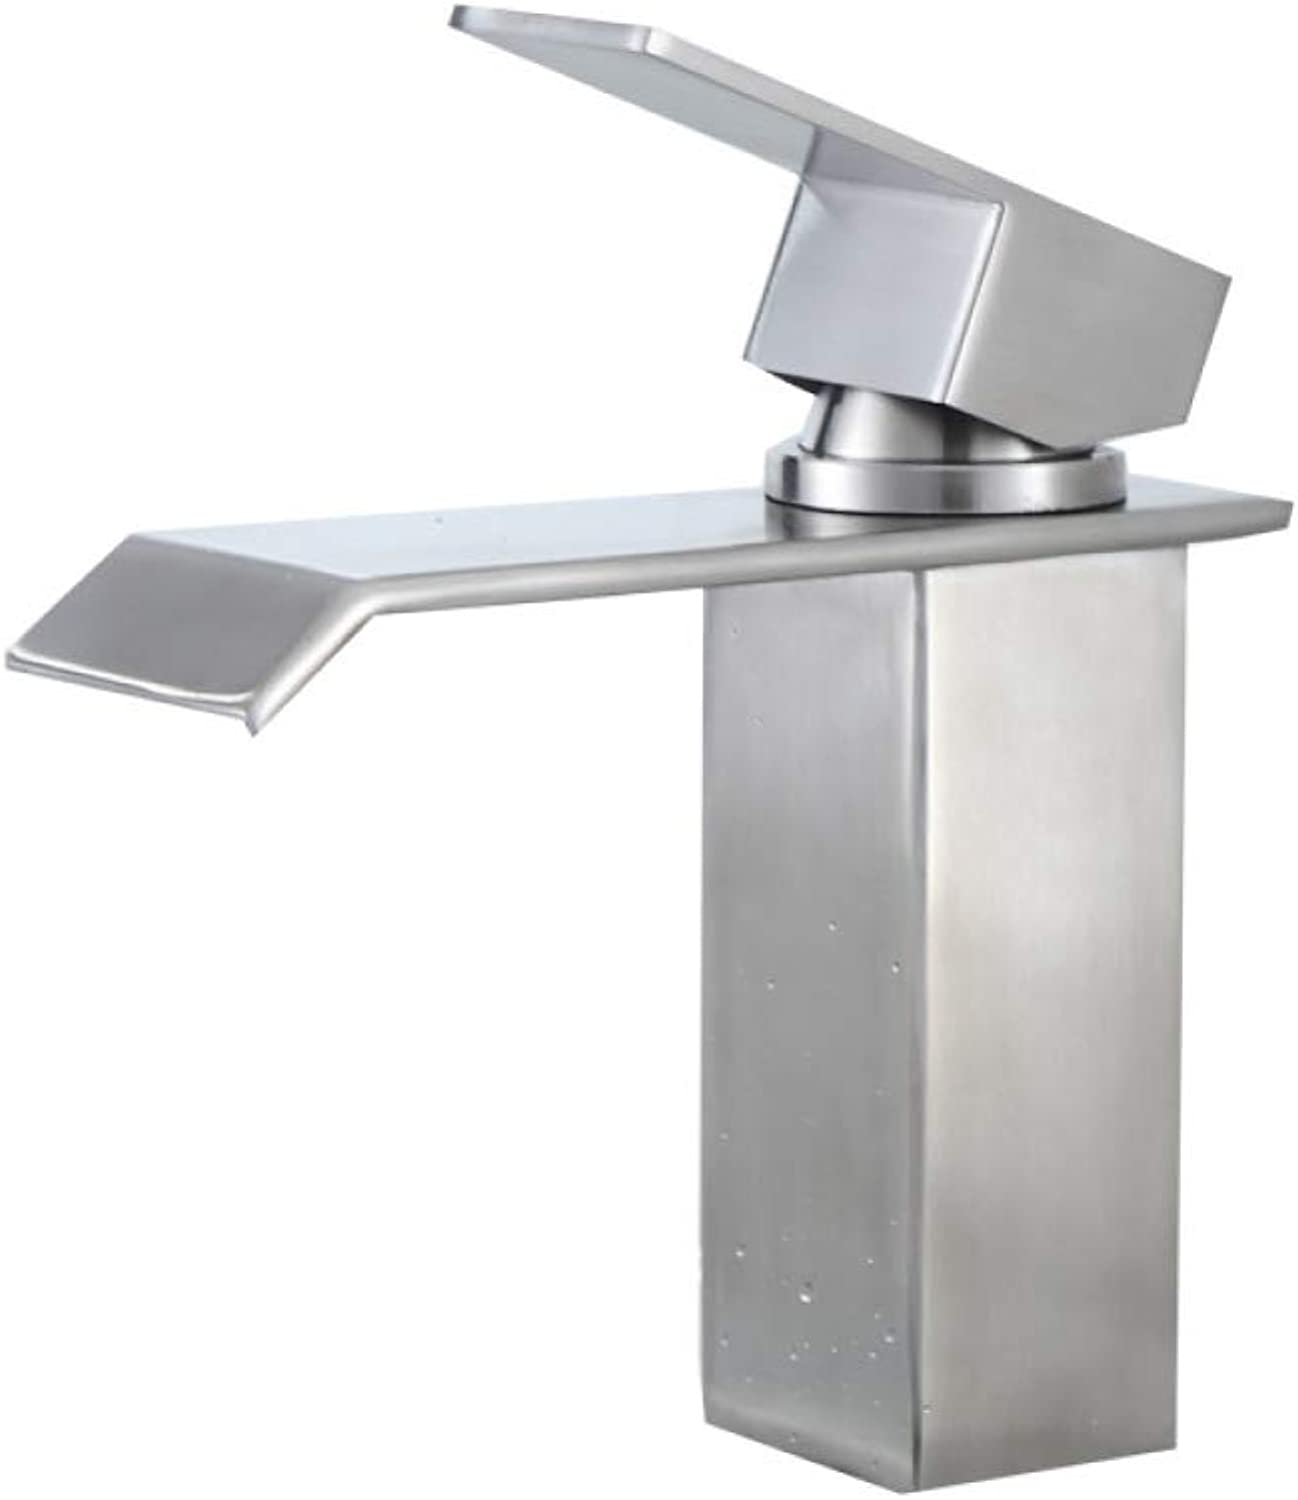 PZXY Faucet 304 Stainless Steel Basin Waterfall Faucet Drawing Single Hole Mixing Valve Faucet